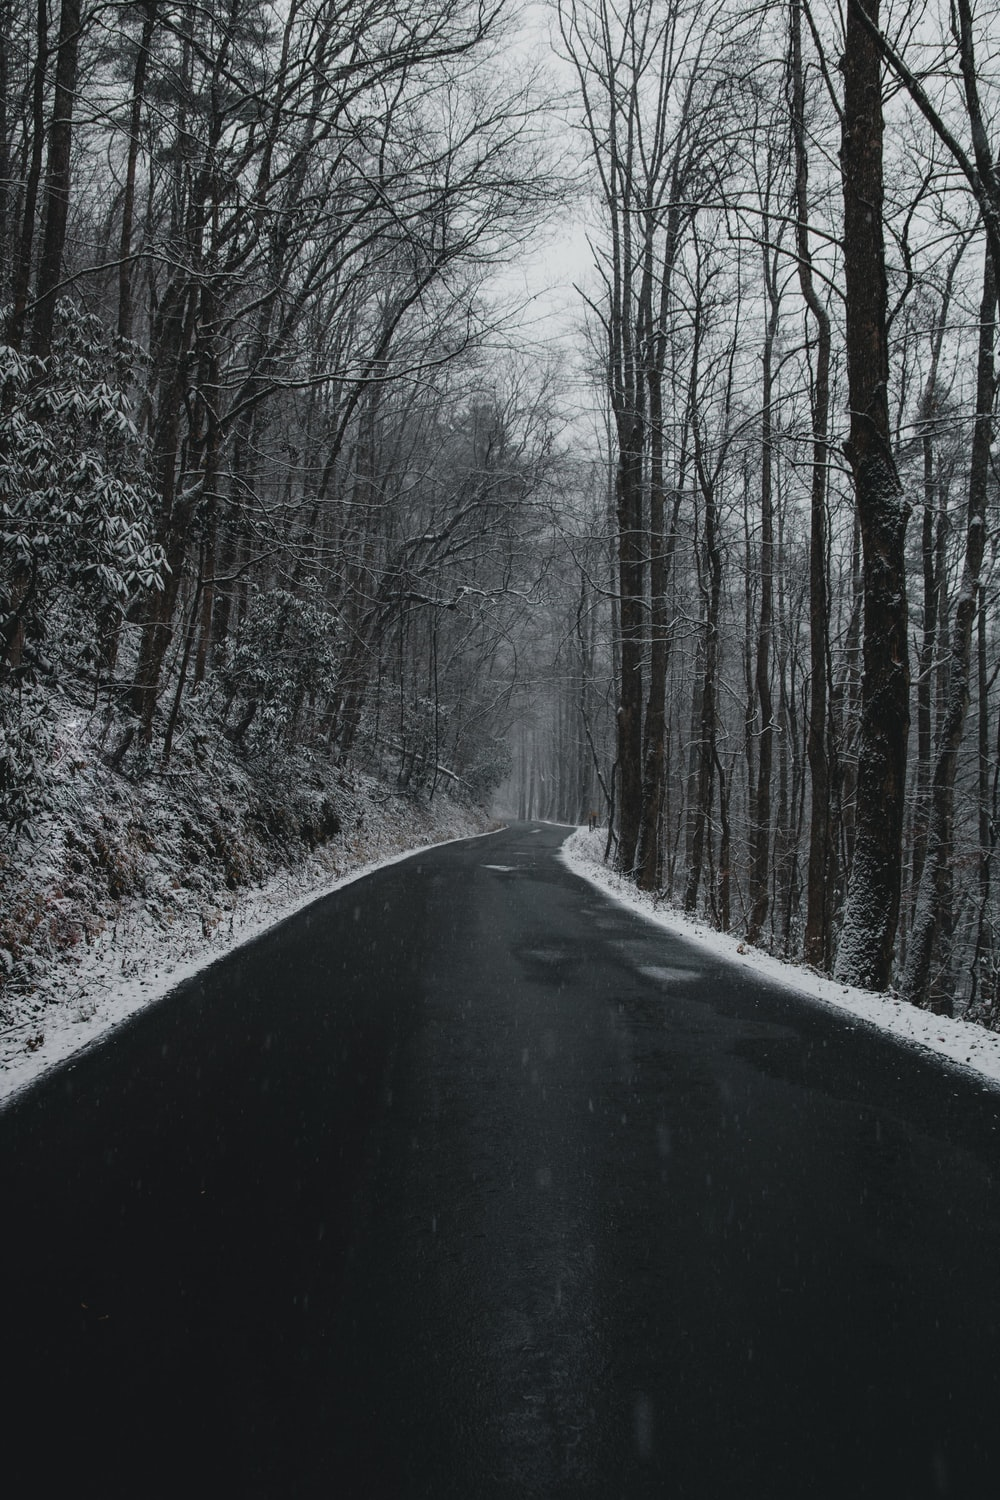 road in the middle of bare trees